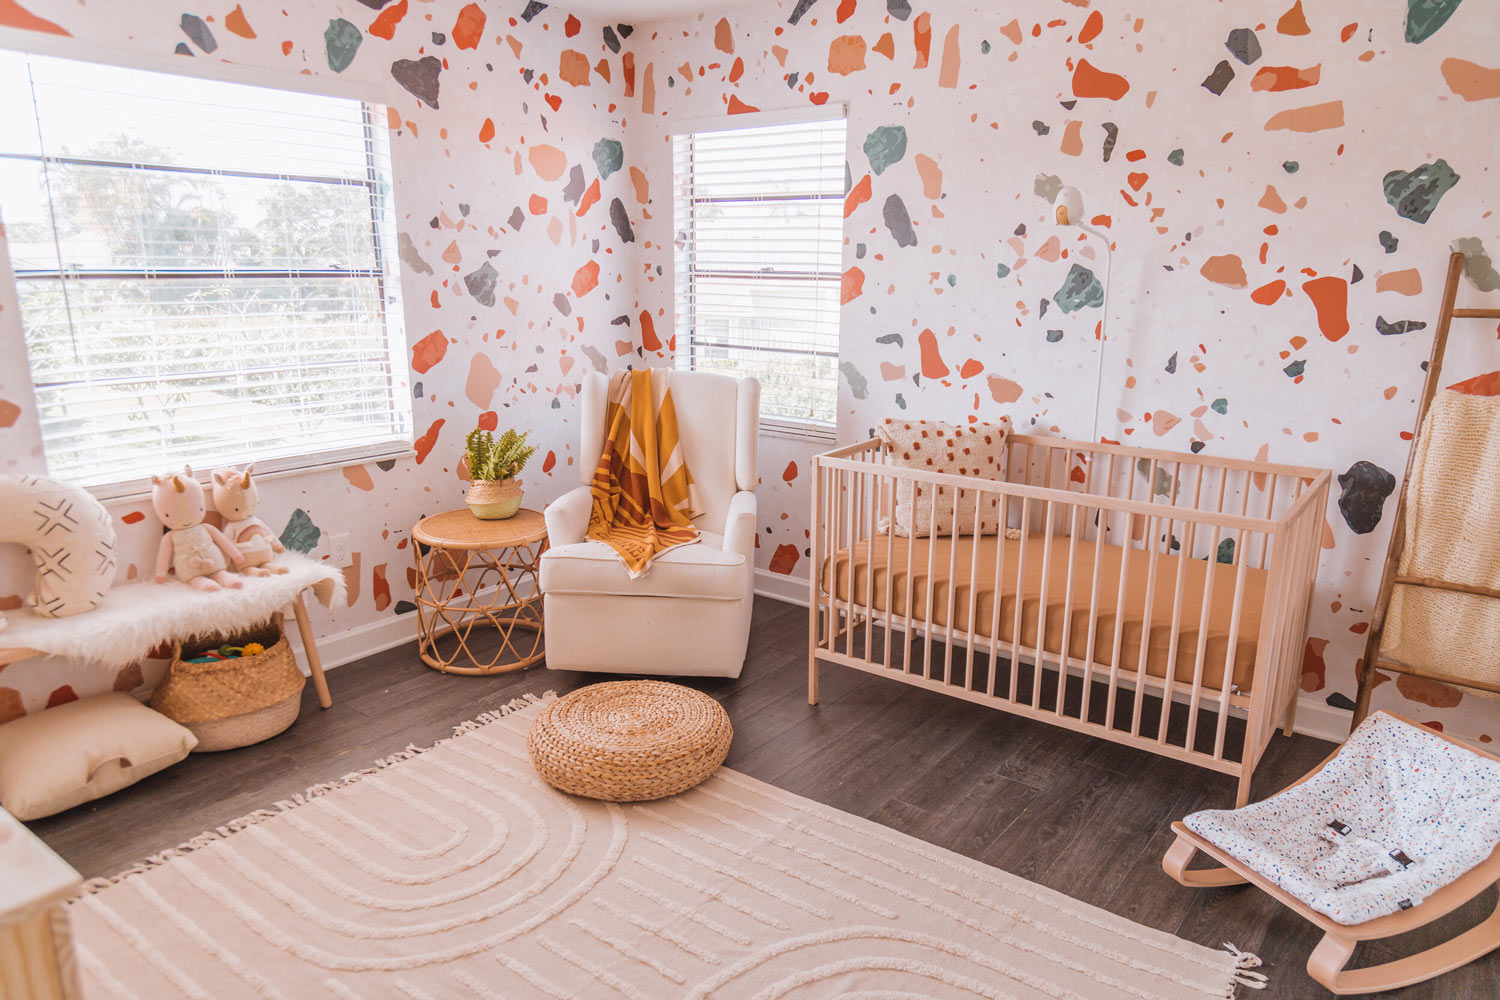 Warm tone baby girl nursery interior design with removable wallpaper feature wall